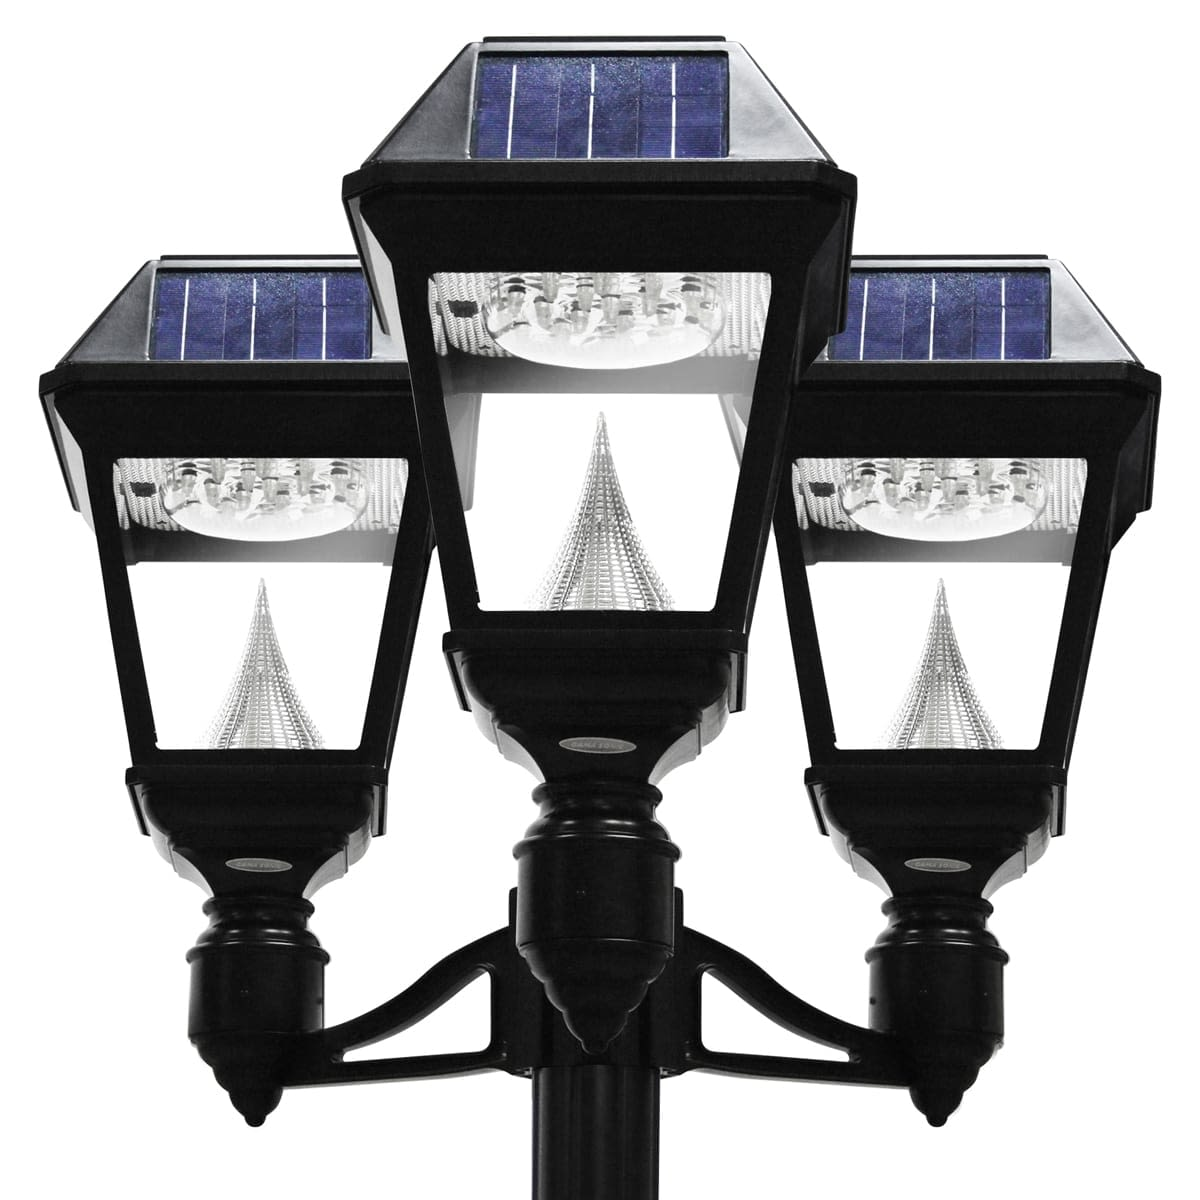 Gama Sonic Imperial II Series – Triple Solar Lamp and Lamp Post GS-97NT